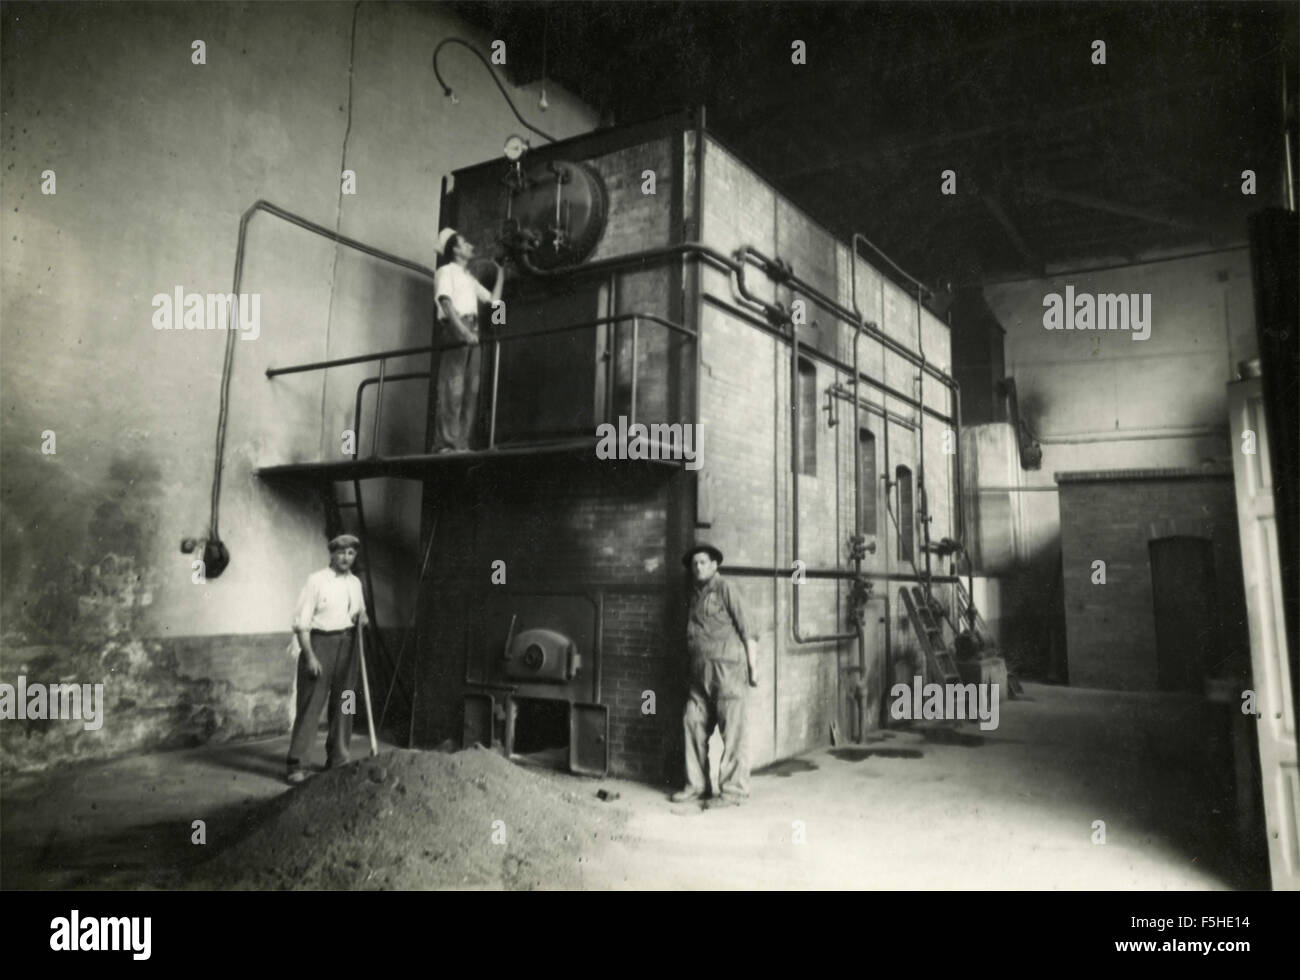 Men at work to a steam boiler, Italy Stock Photo: 89509312 - Alamy